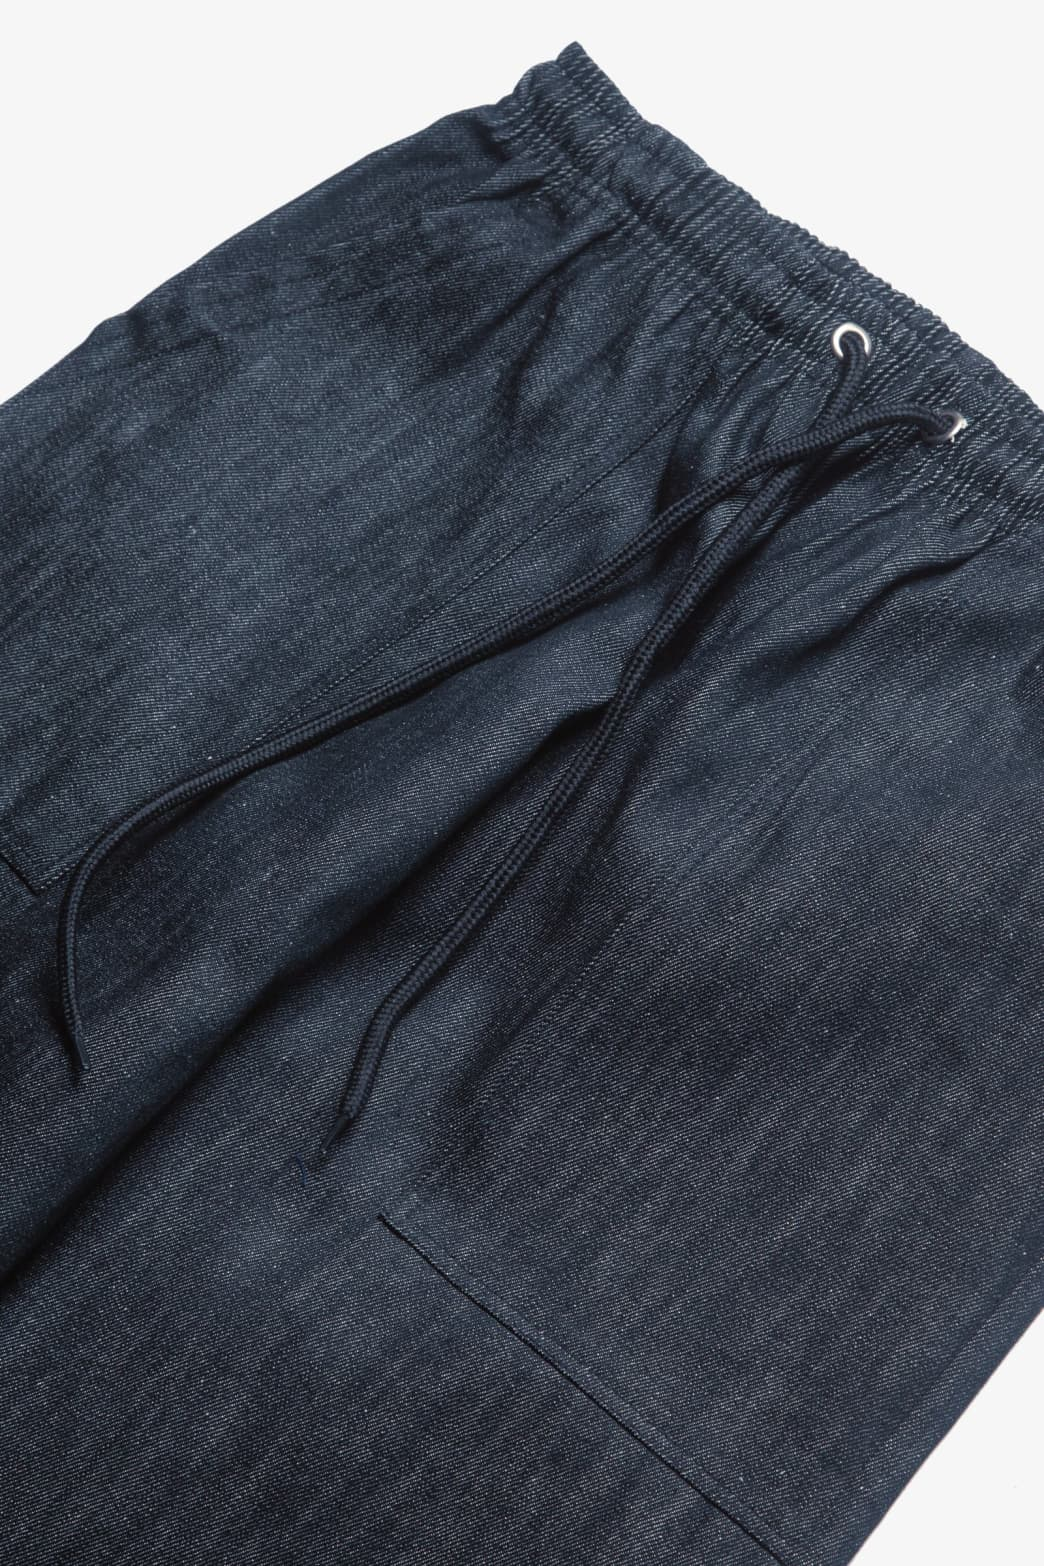 Service Works - Classic Chef Pants - Indigo Denim   Trousers by Service Works 4